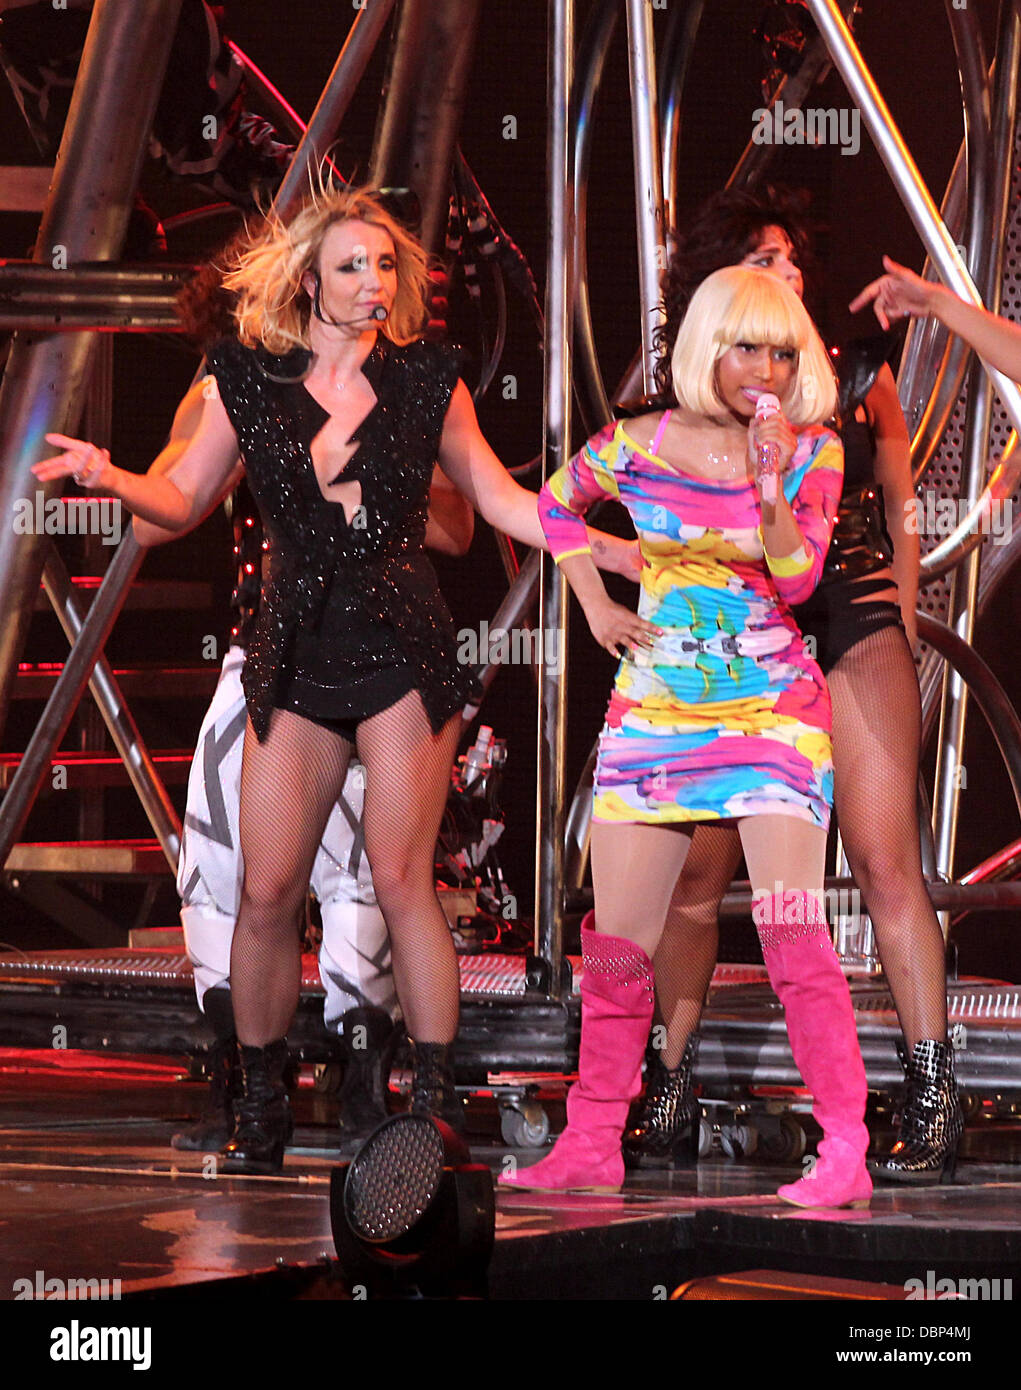 Britney Spears And Nicki Minaj Performing On Her Femme Fatale Tour Stock Photo Alamy